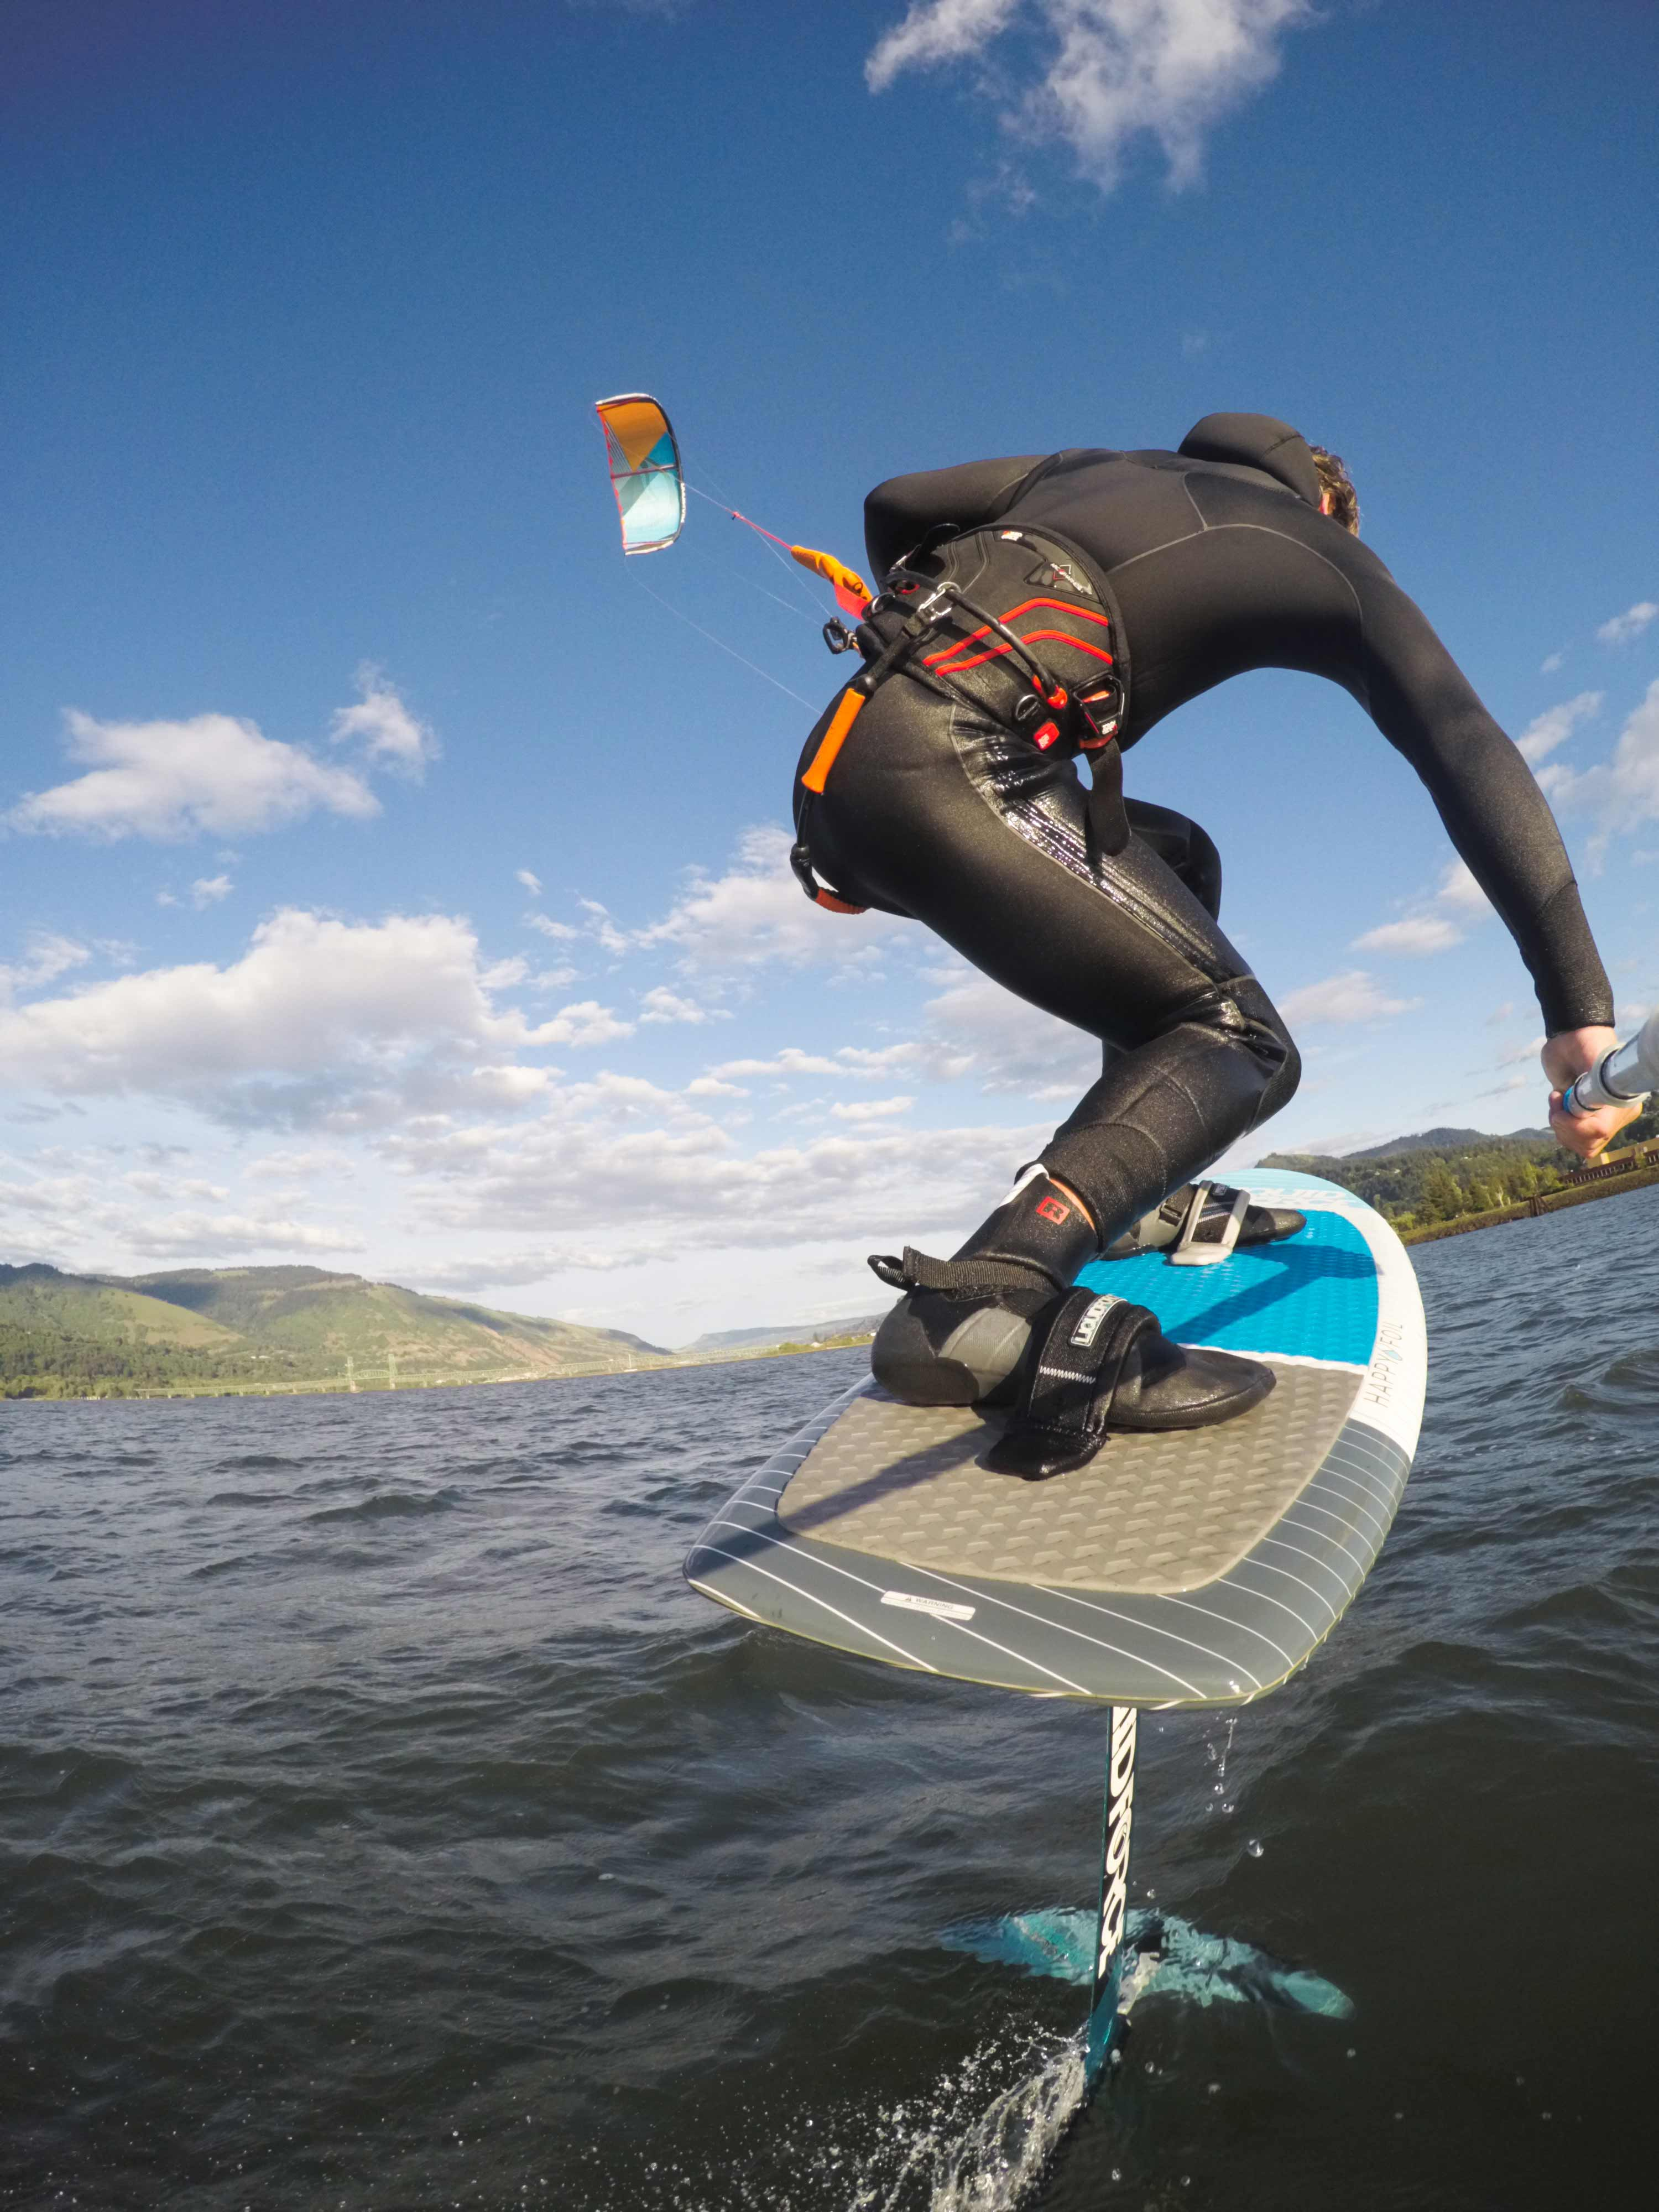 Liquid Force team rider Brandon Scheid works his way downwind in Hood River.